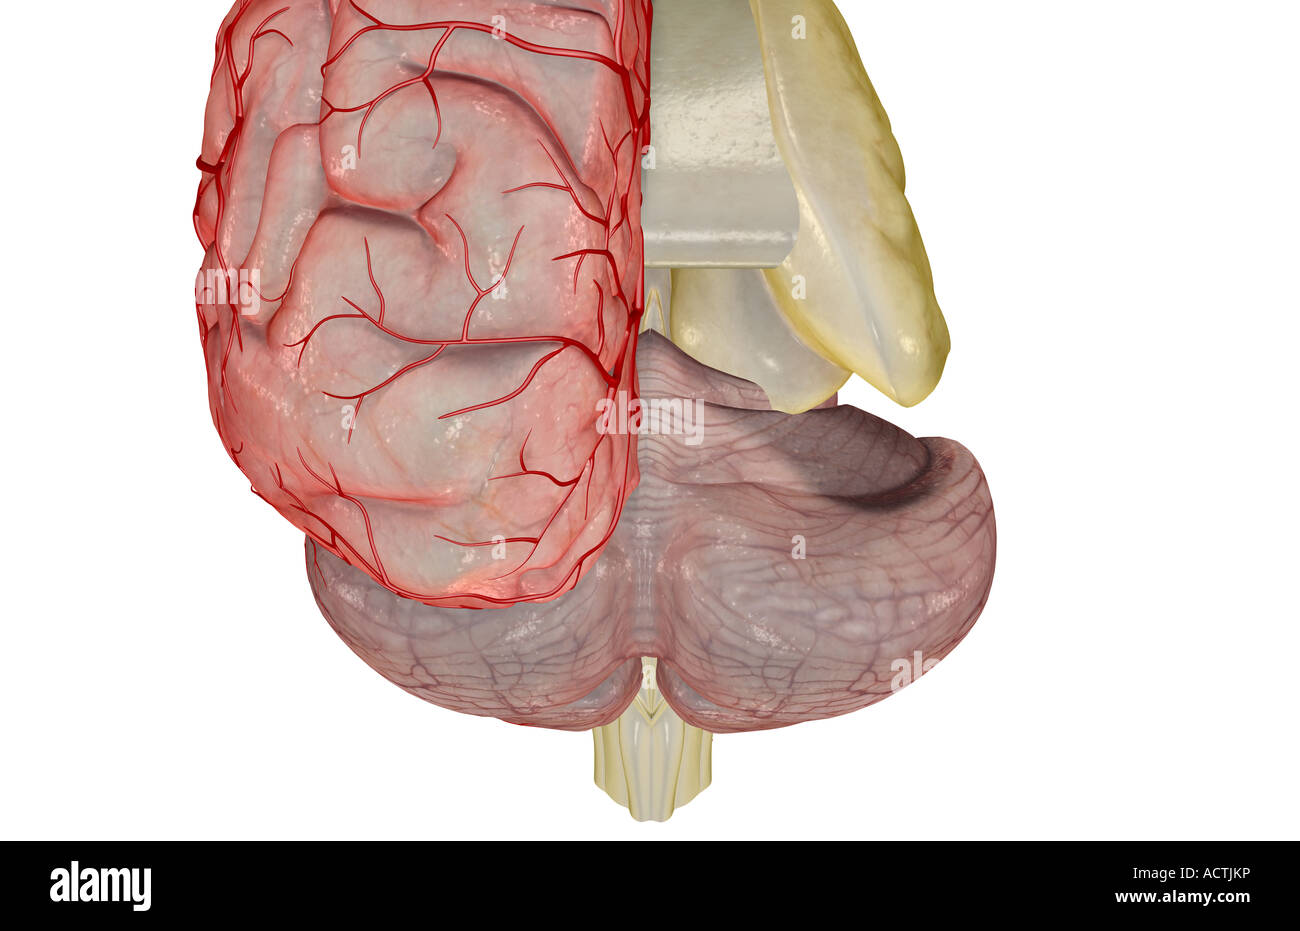 Cerebral Arteries Stockfotos & Cerebral Arteries Bilder - Alamy